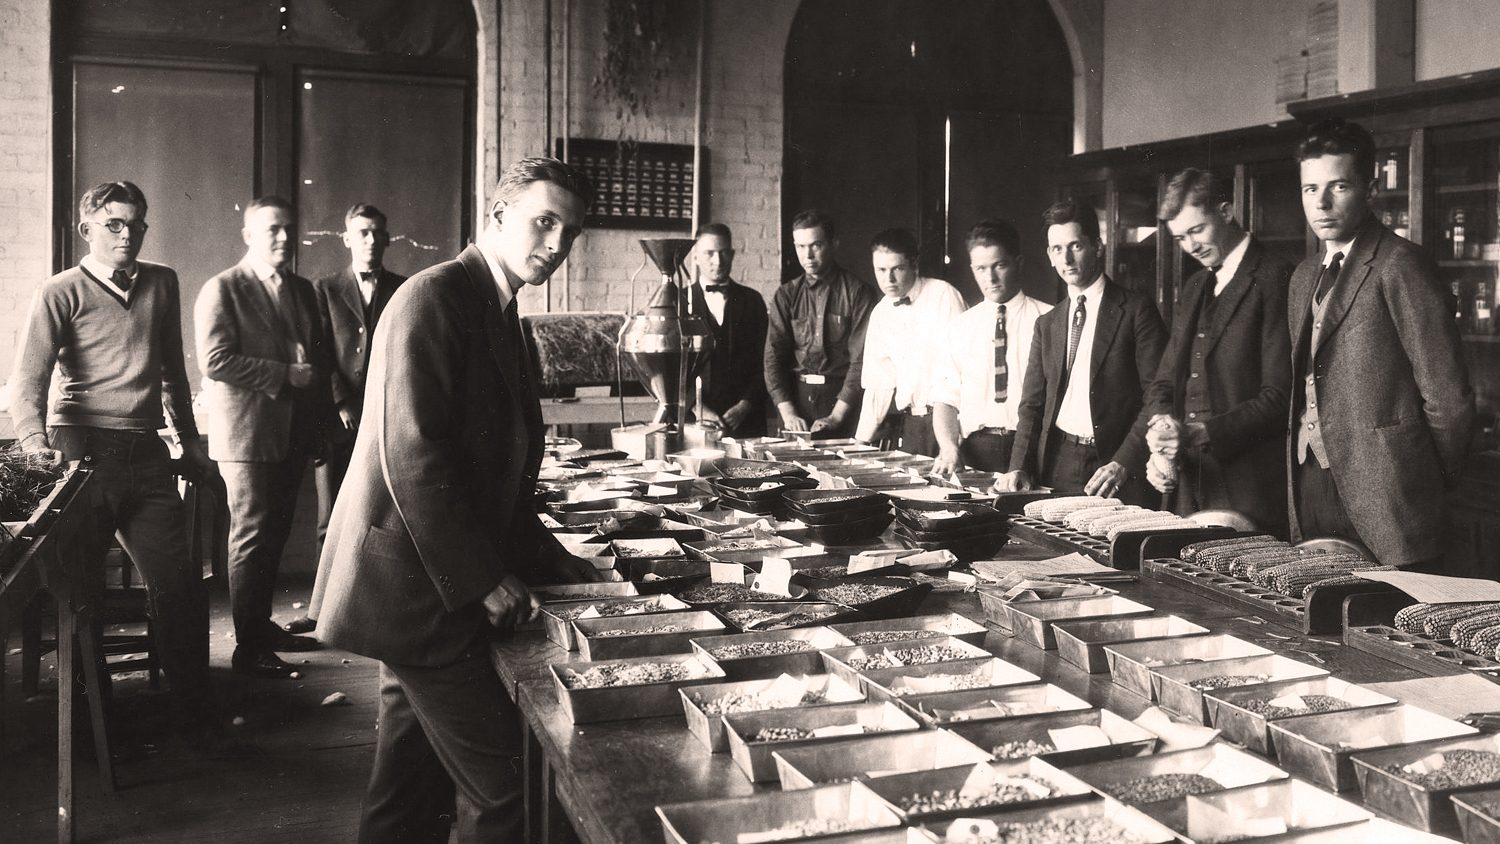 1920s agronomy class at NC State